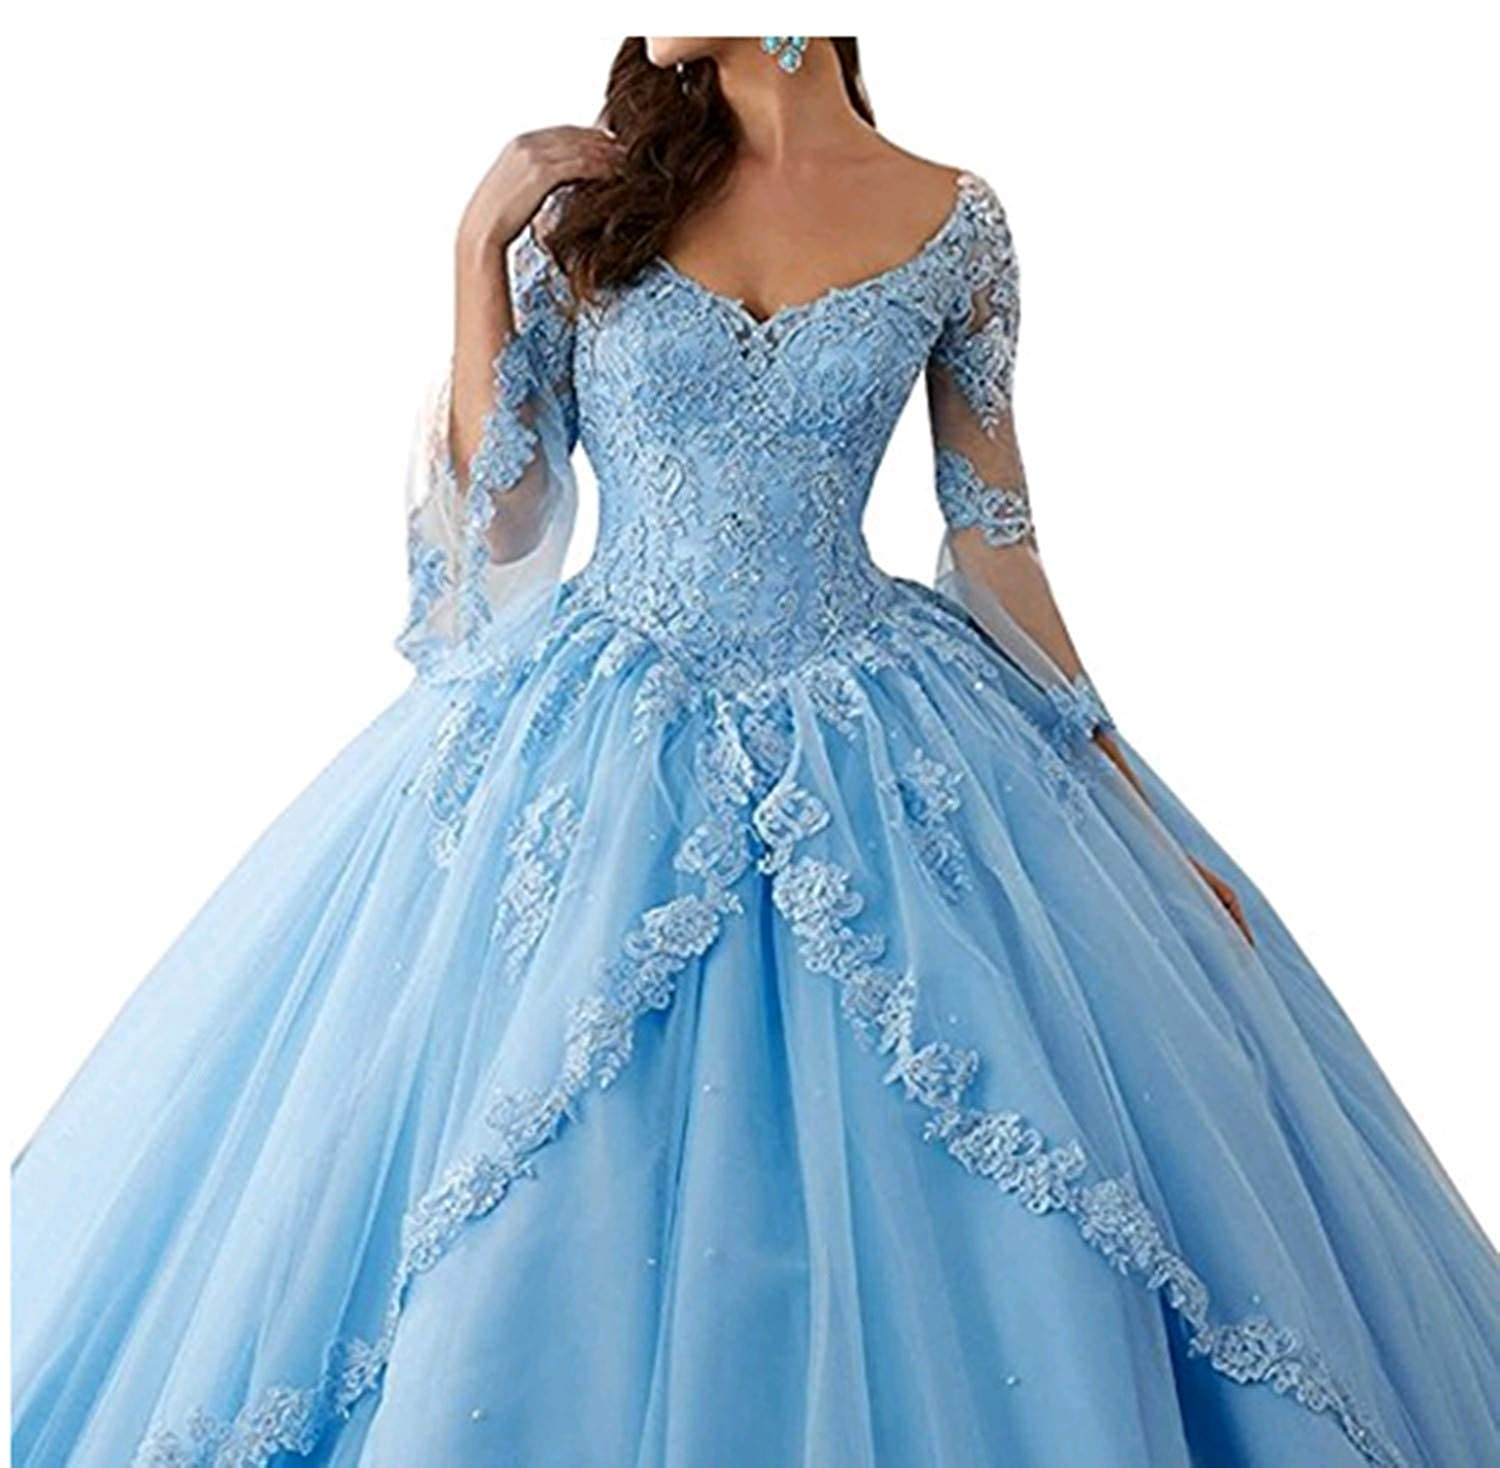 eb85bbc3906 Annadress Women s Long Sleeve Lace Quinceanera Dresses Train V-Neck Ball  Gown at Amazon Women s Clothing store